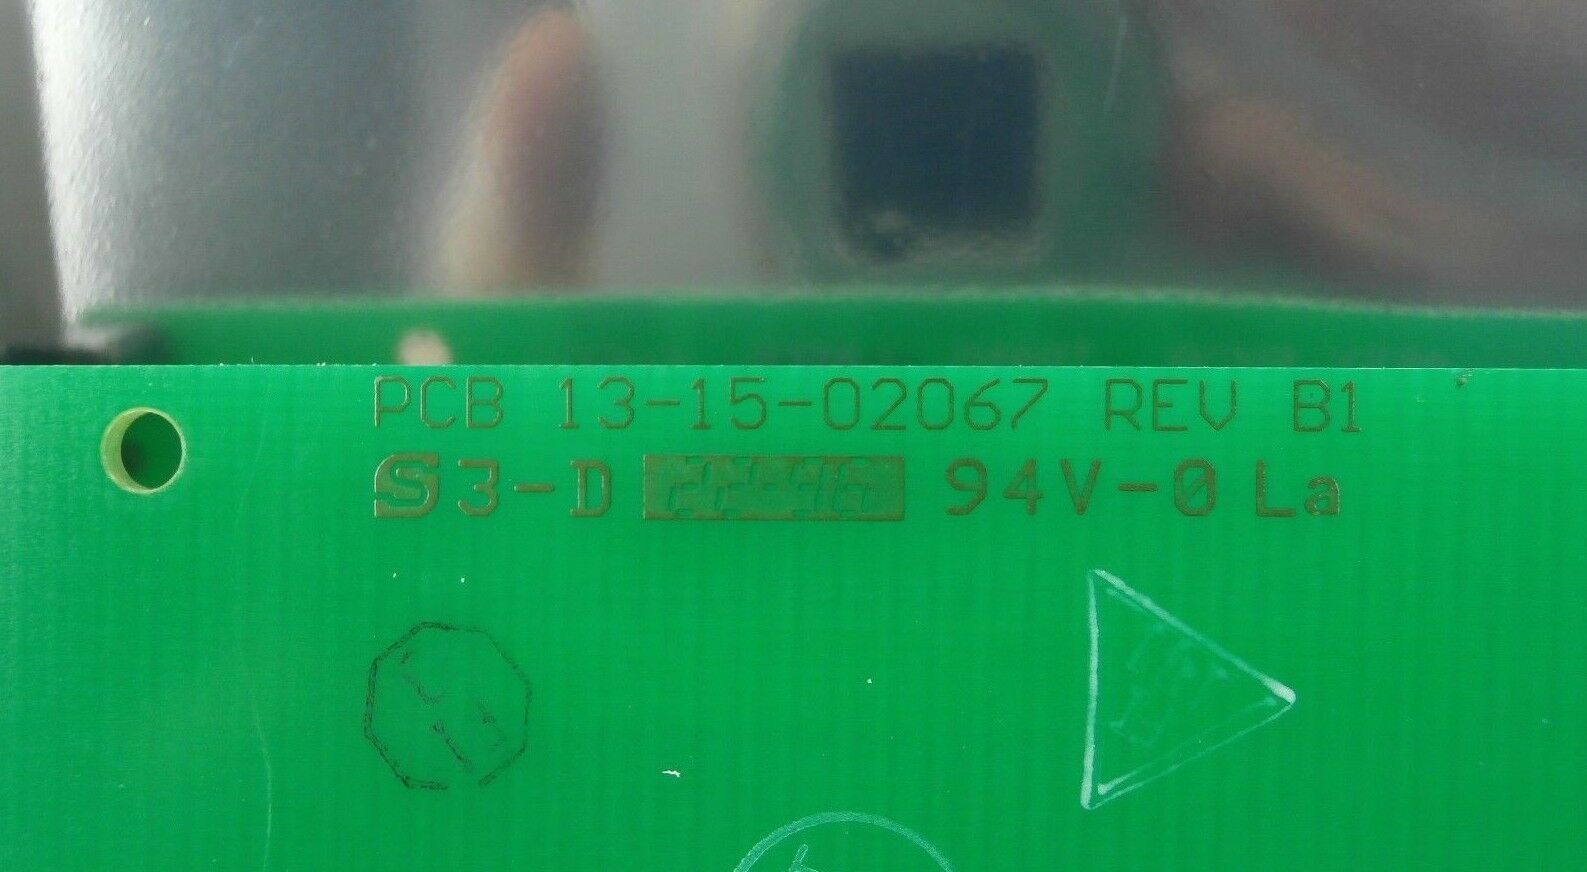 Ultratech Stepper 03-15-02066 6-Axis Laser Transition Y-Axis PCB Card 4700 Used